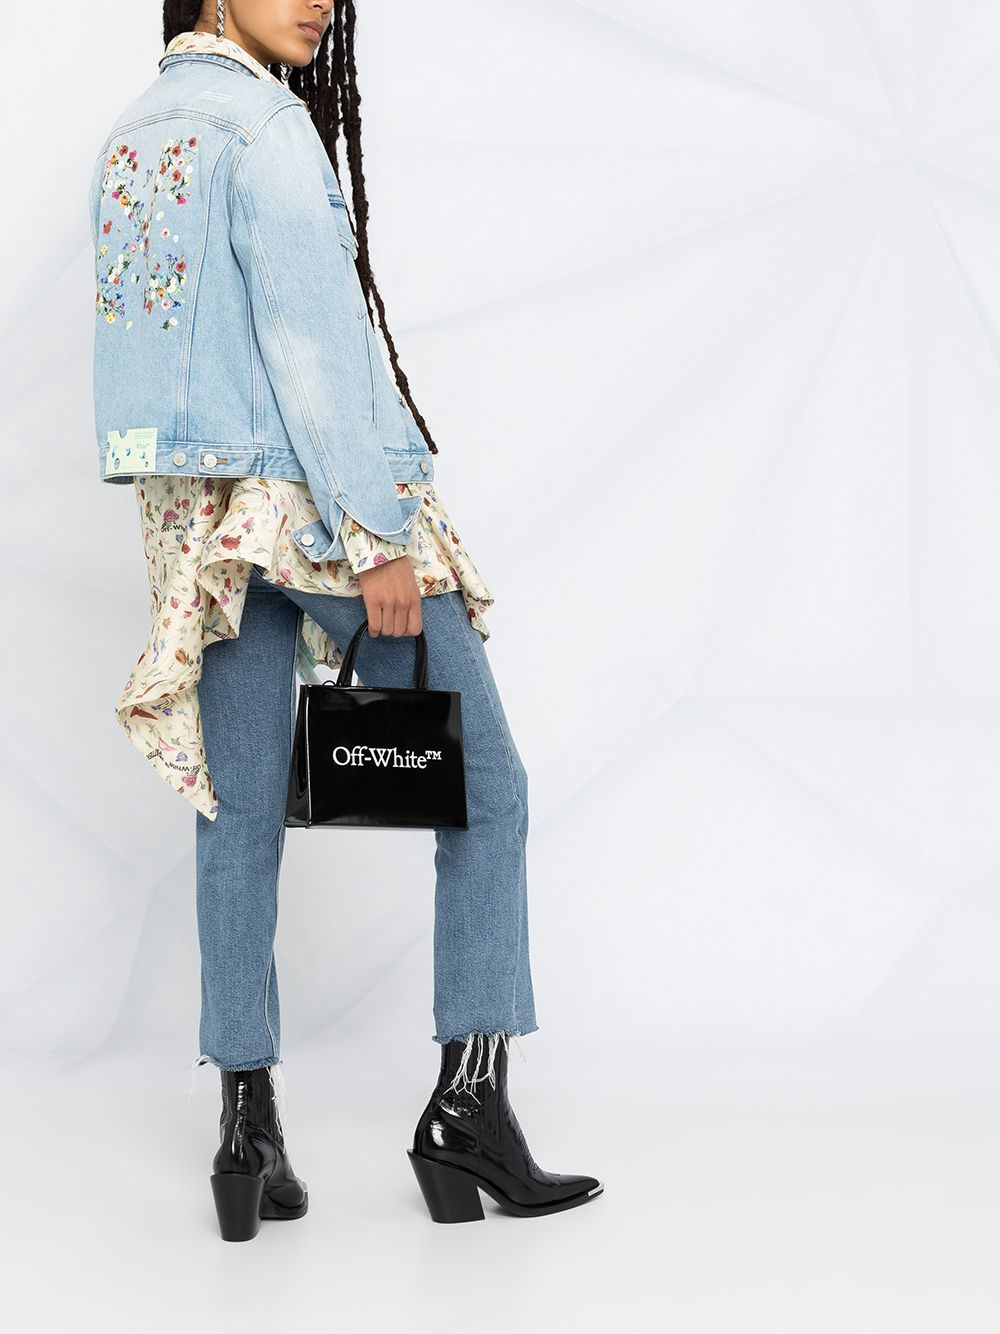 Off-White Women's Arrow Logo Denim Jacket - Maison De Fashion